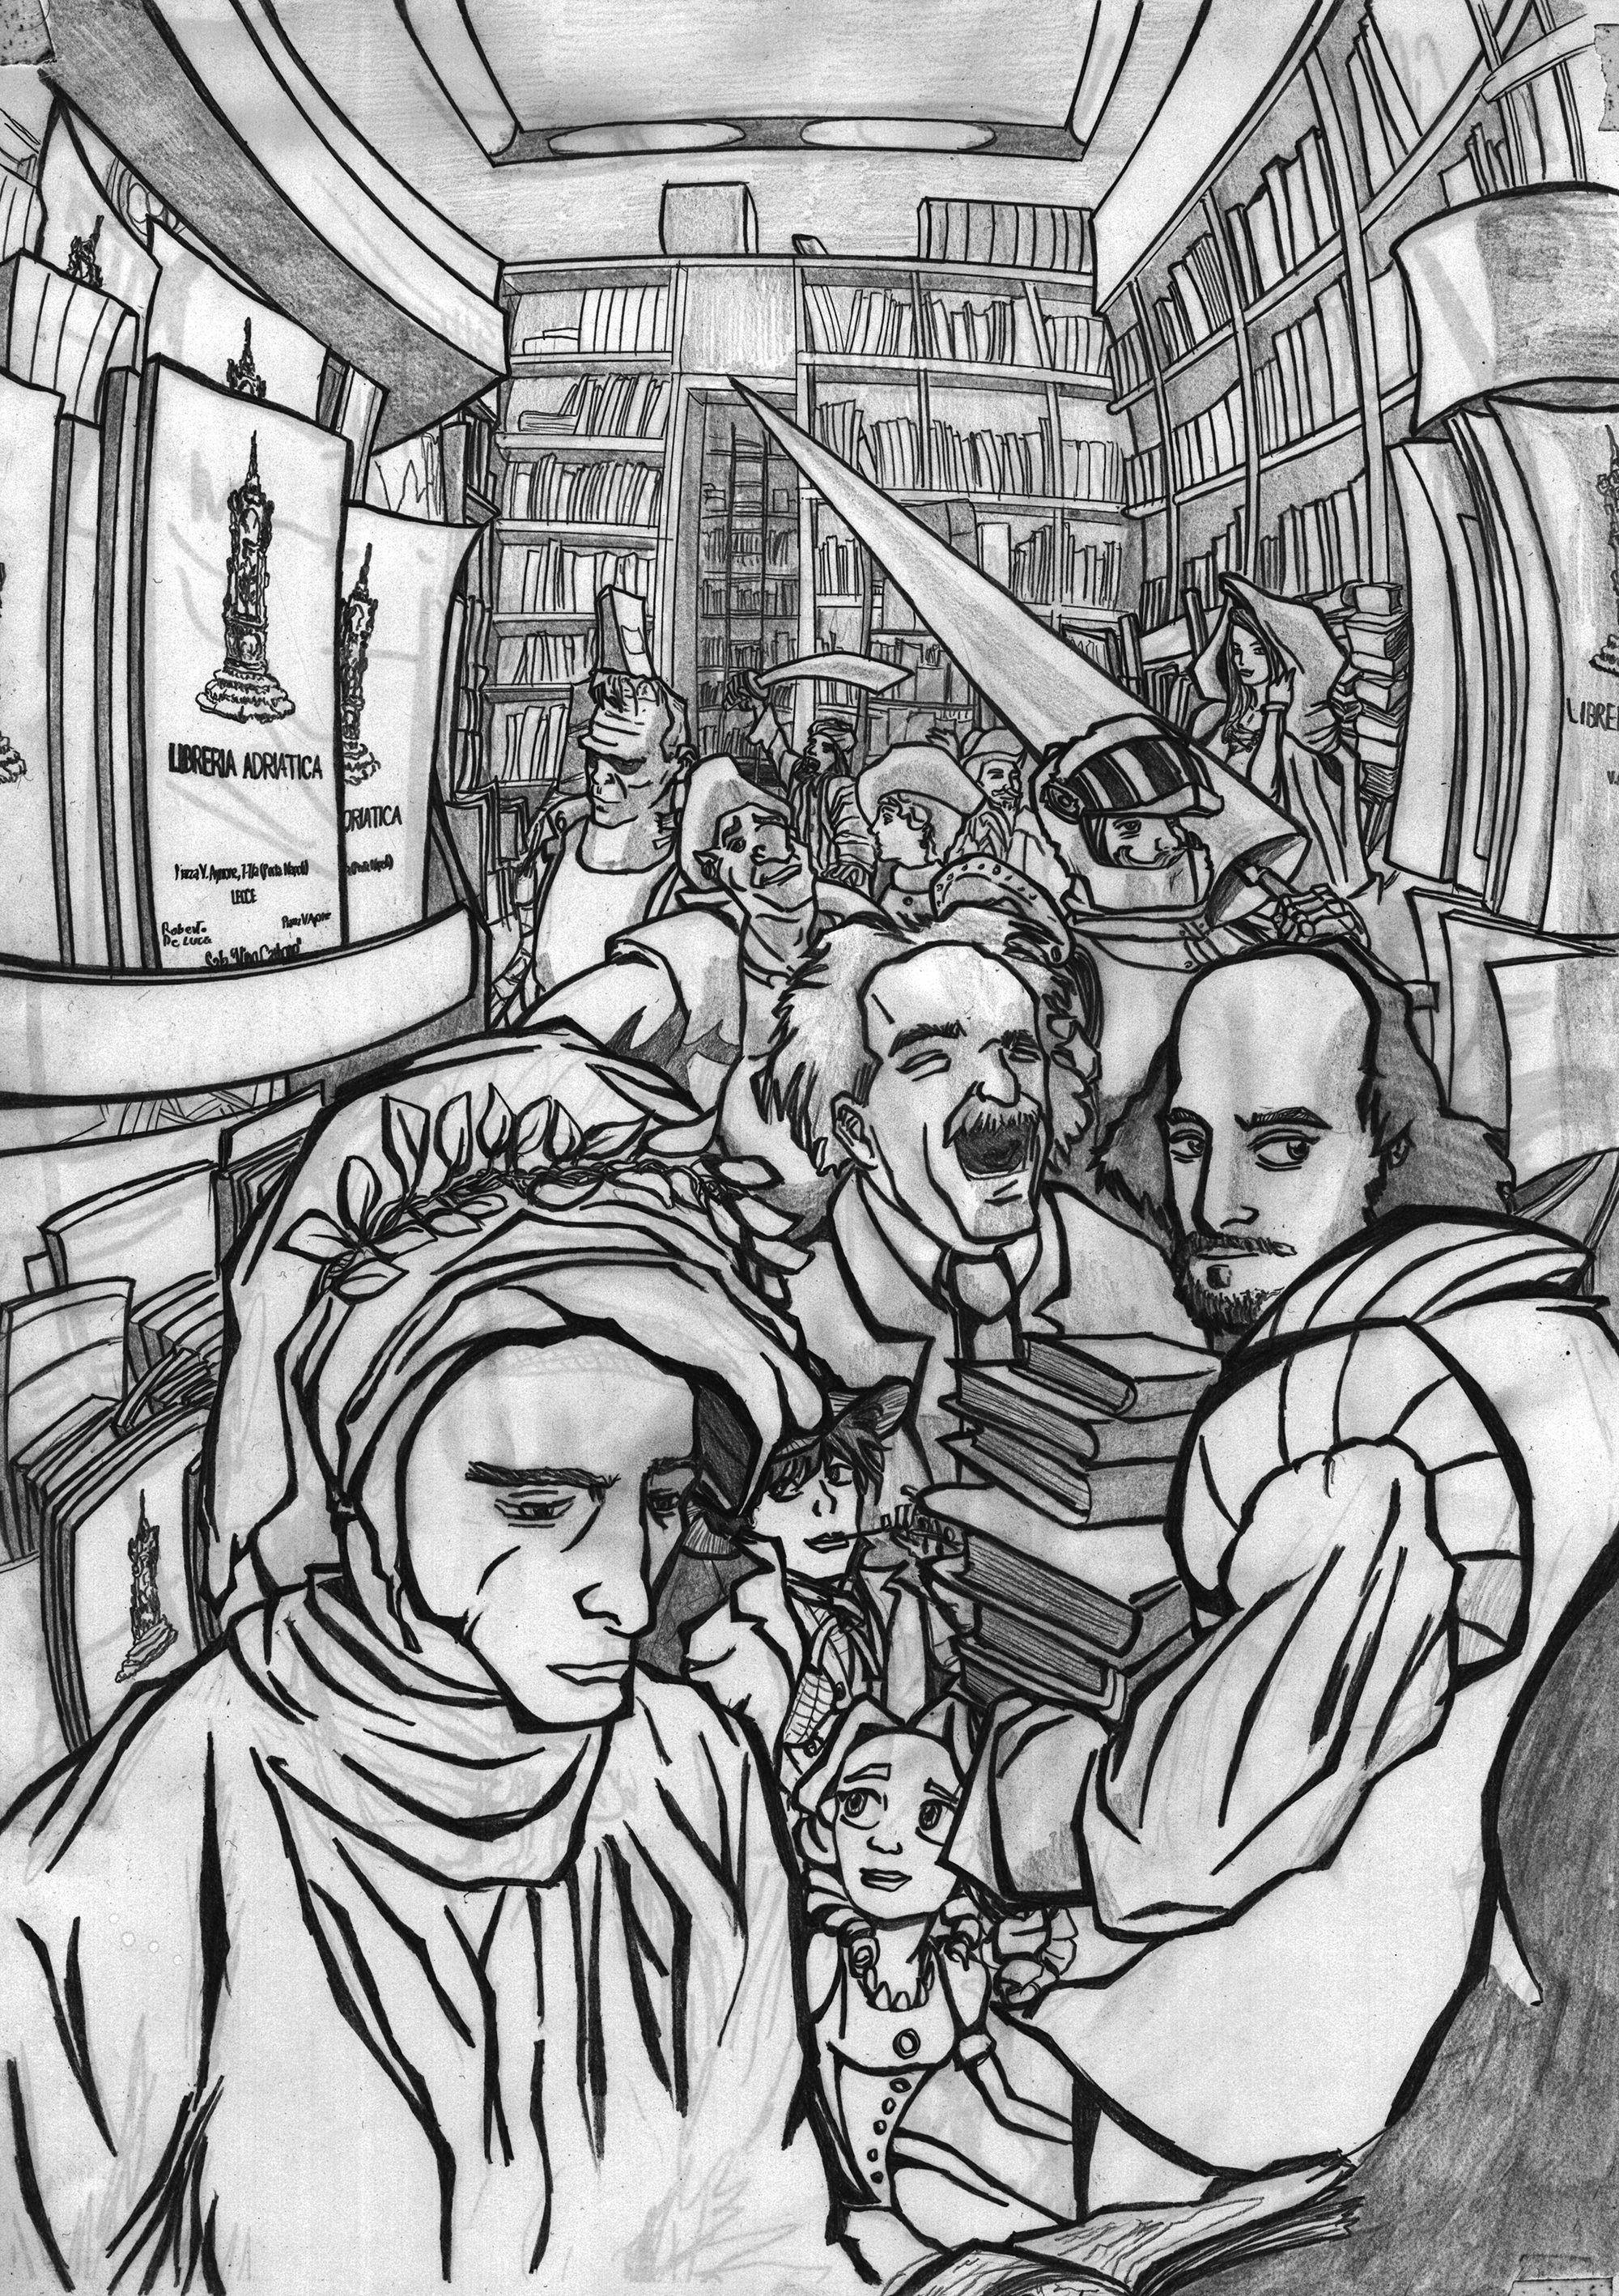 POSTER IN PENCIL FOR A LIBRARY - commission